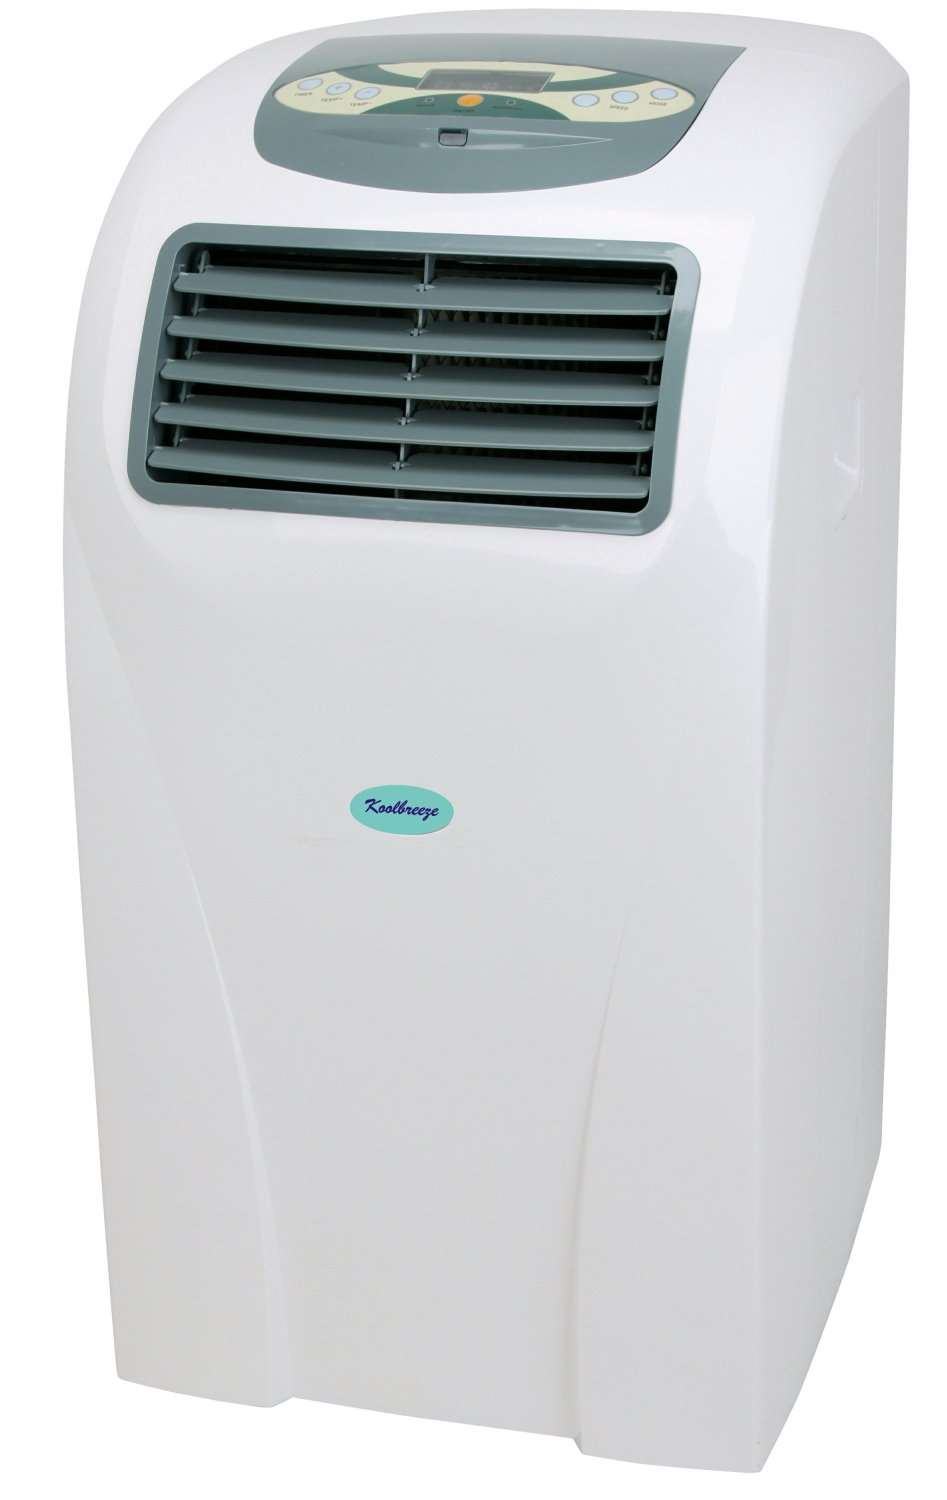 Koolbreeze Climateasy 16 16000btu Portable Air